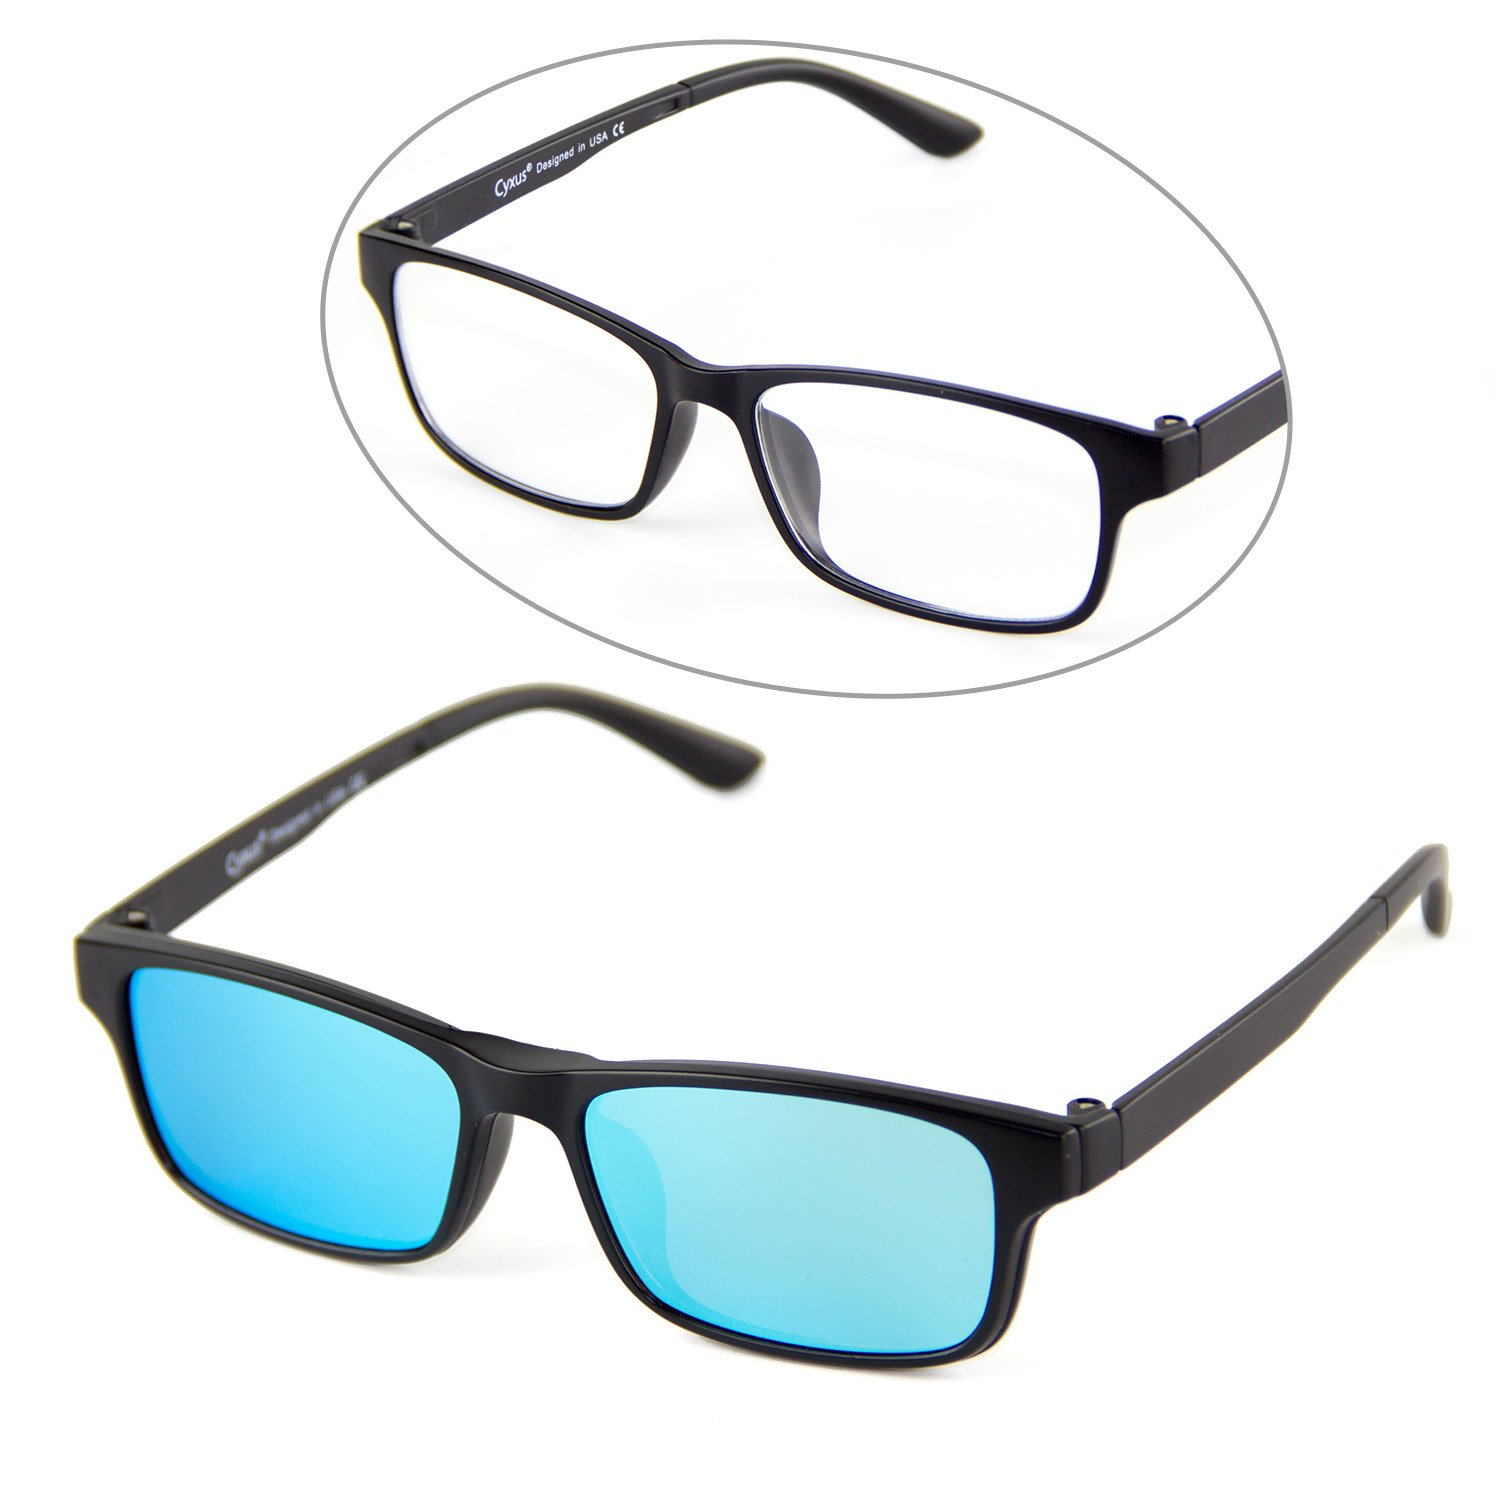 Cyxus Blue Light Blocking Glasses with Clip On Polarized Sunglasses, Rectangular Frame Men/Women (Blue Flash)